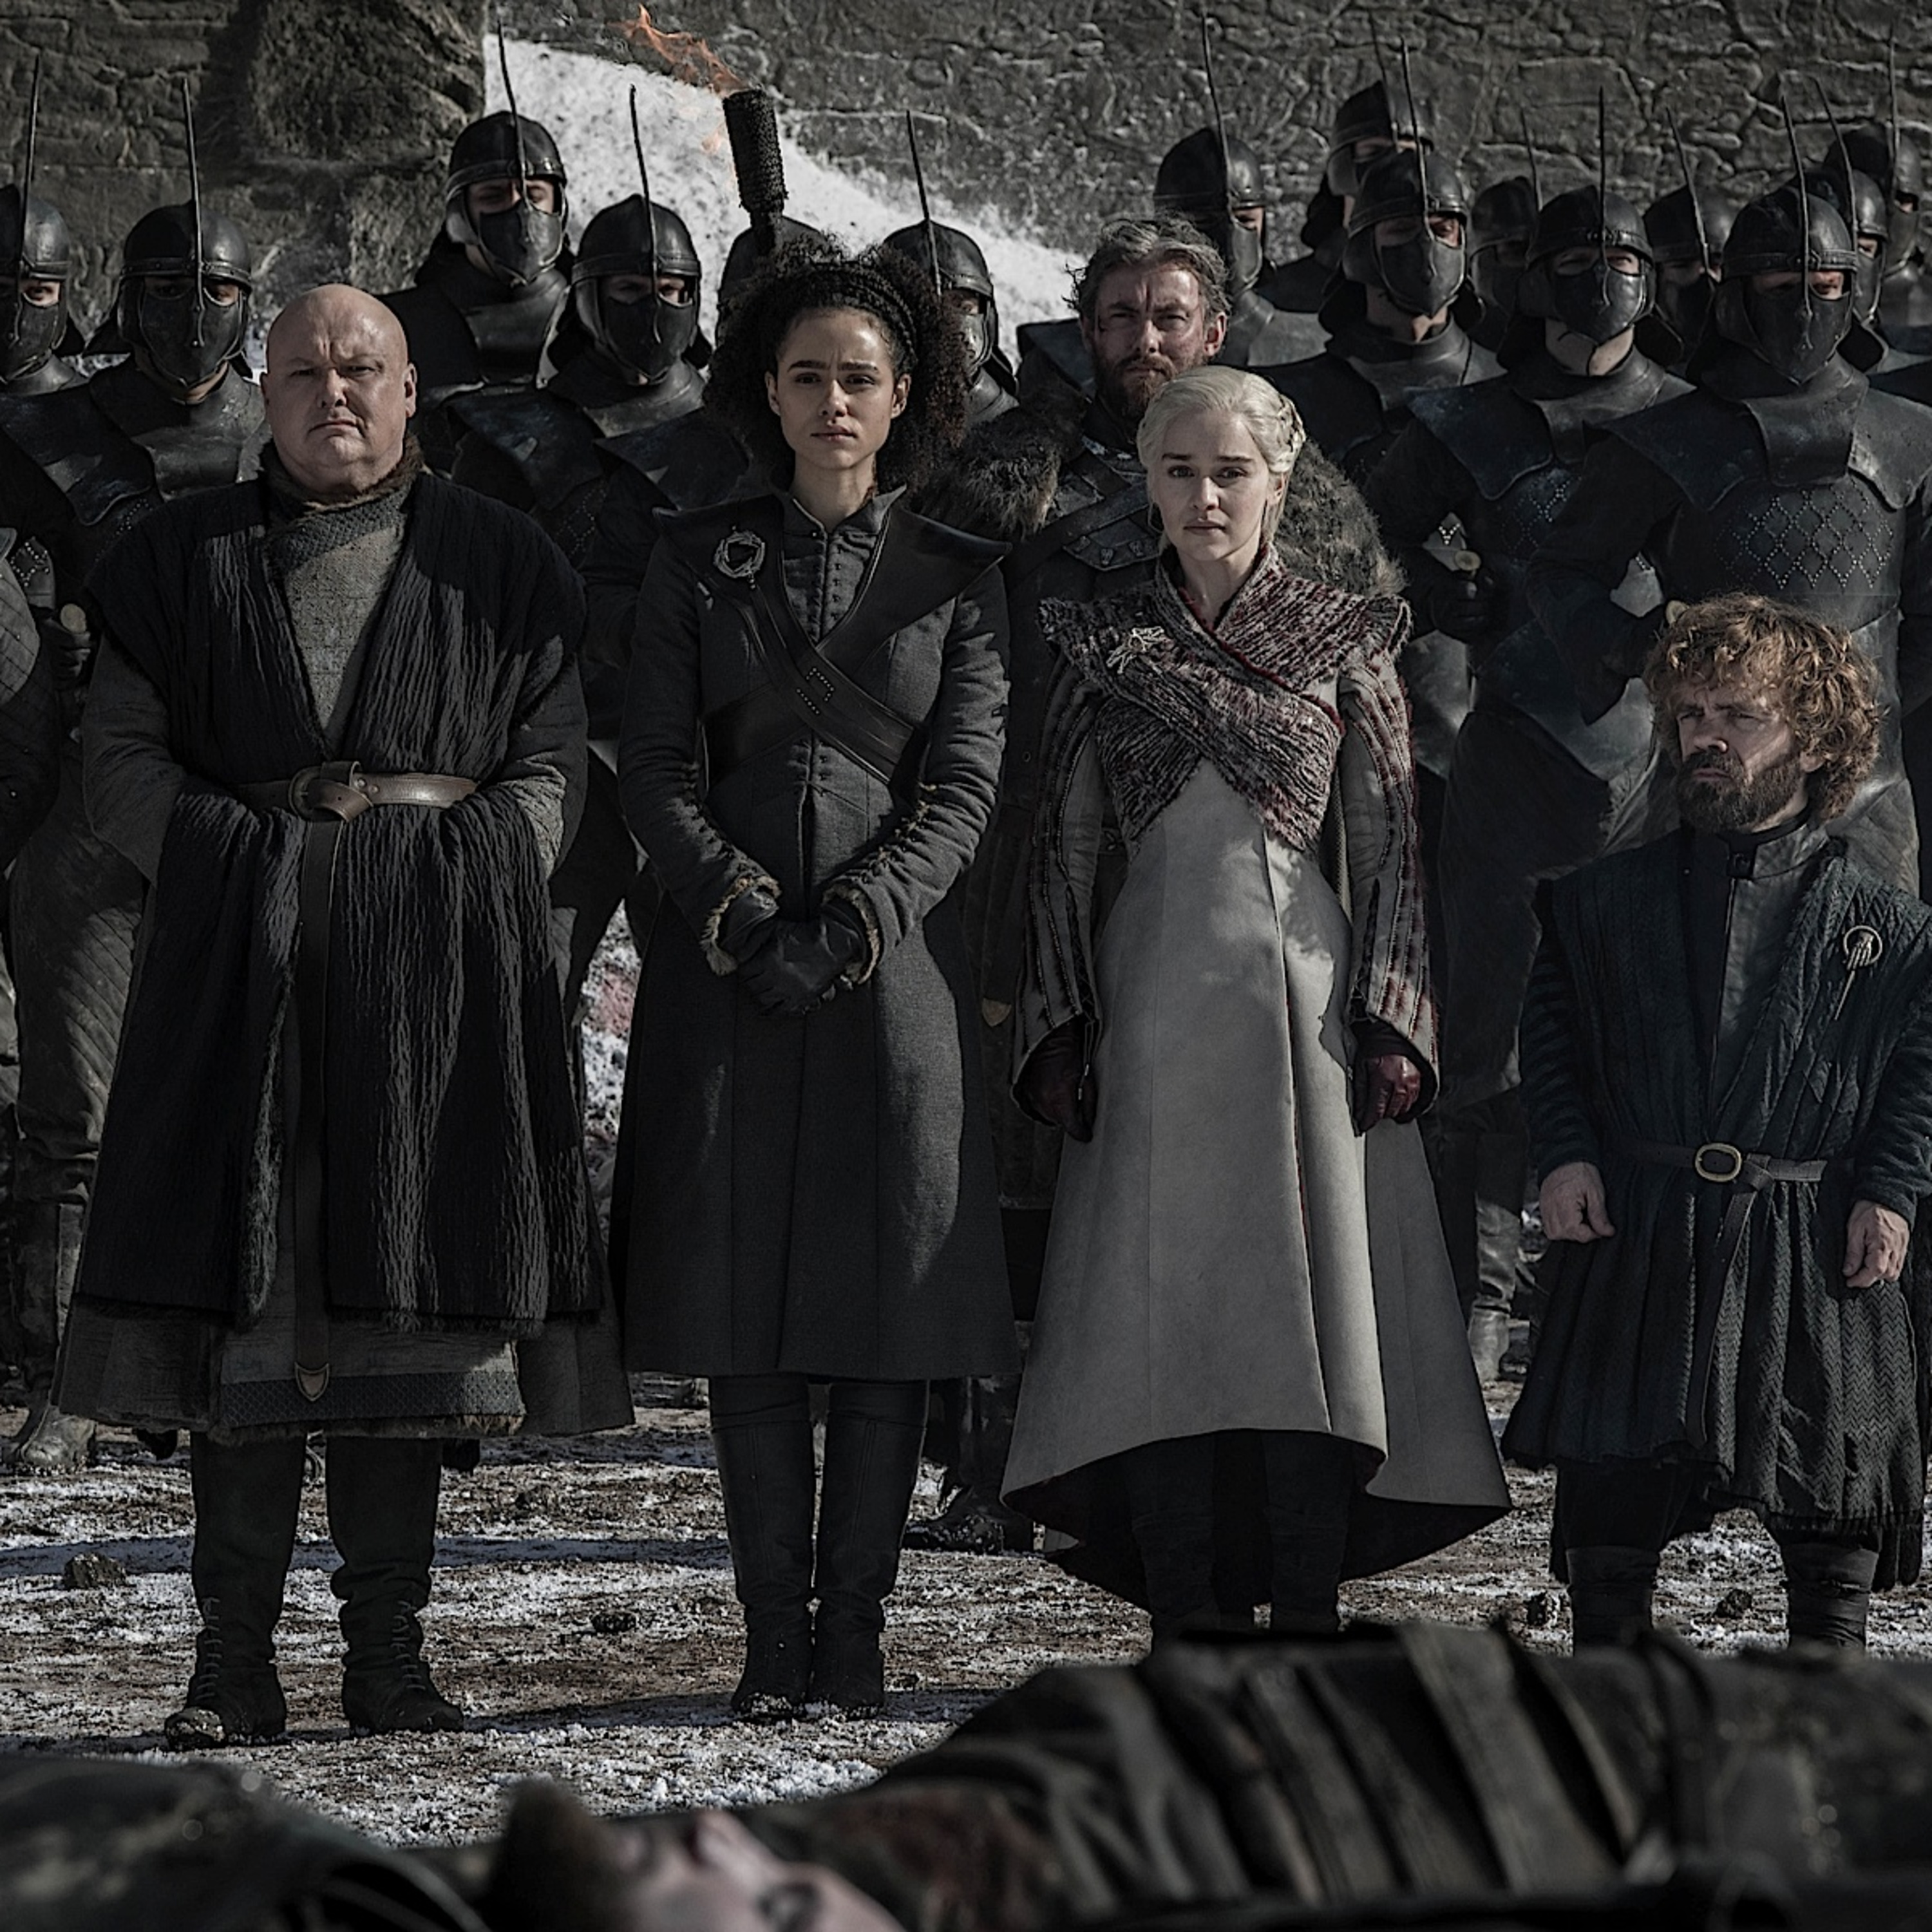 Episode 72: The Last of the Starks